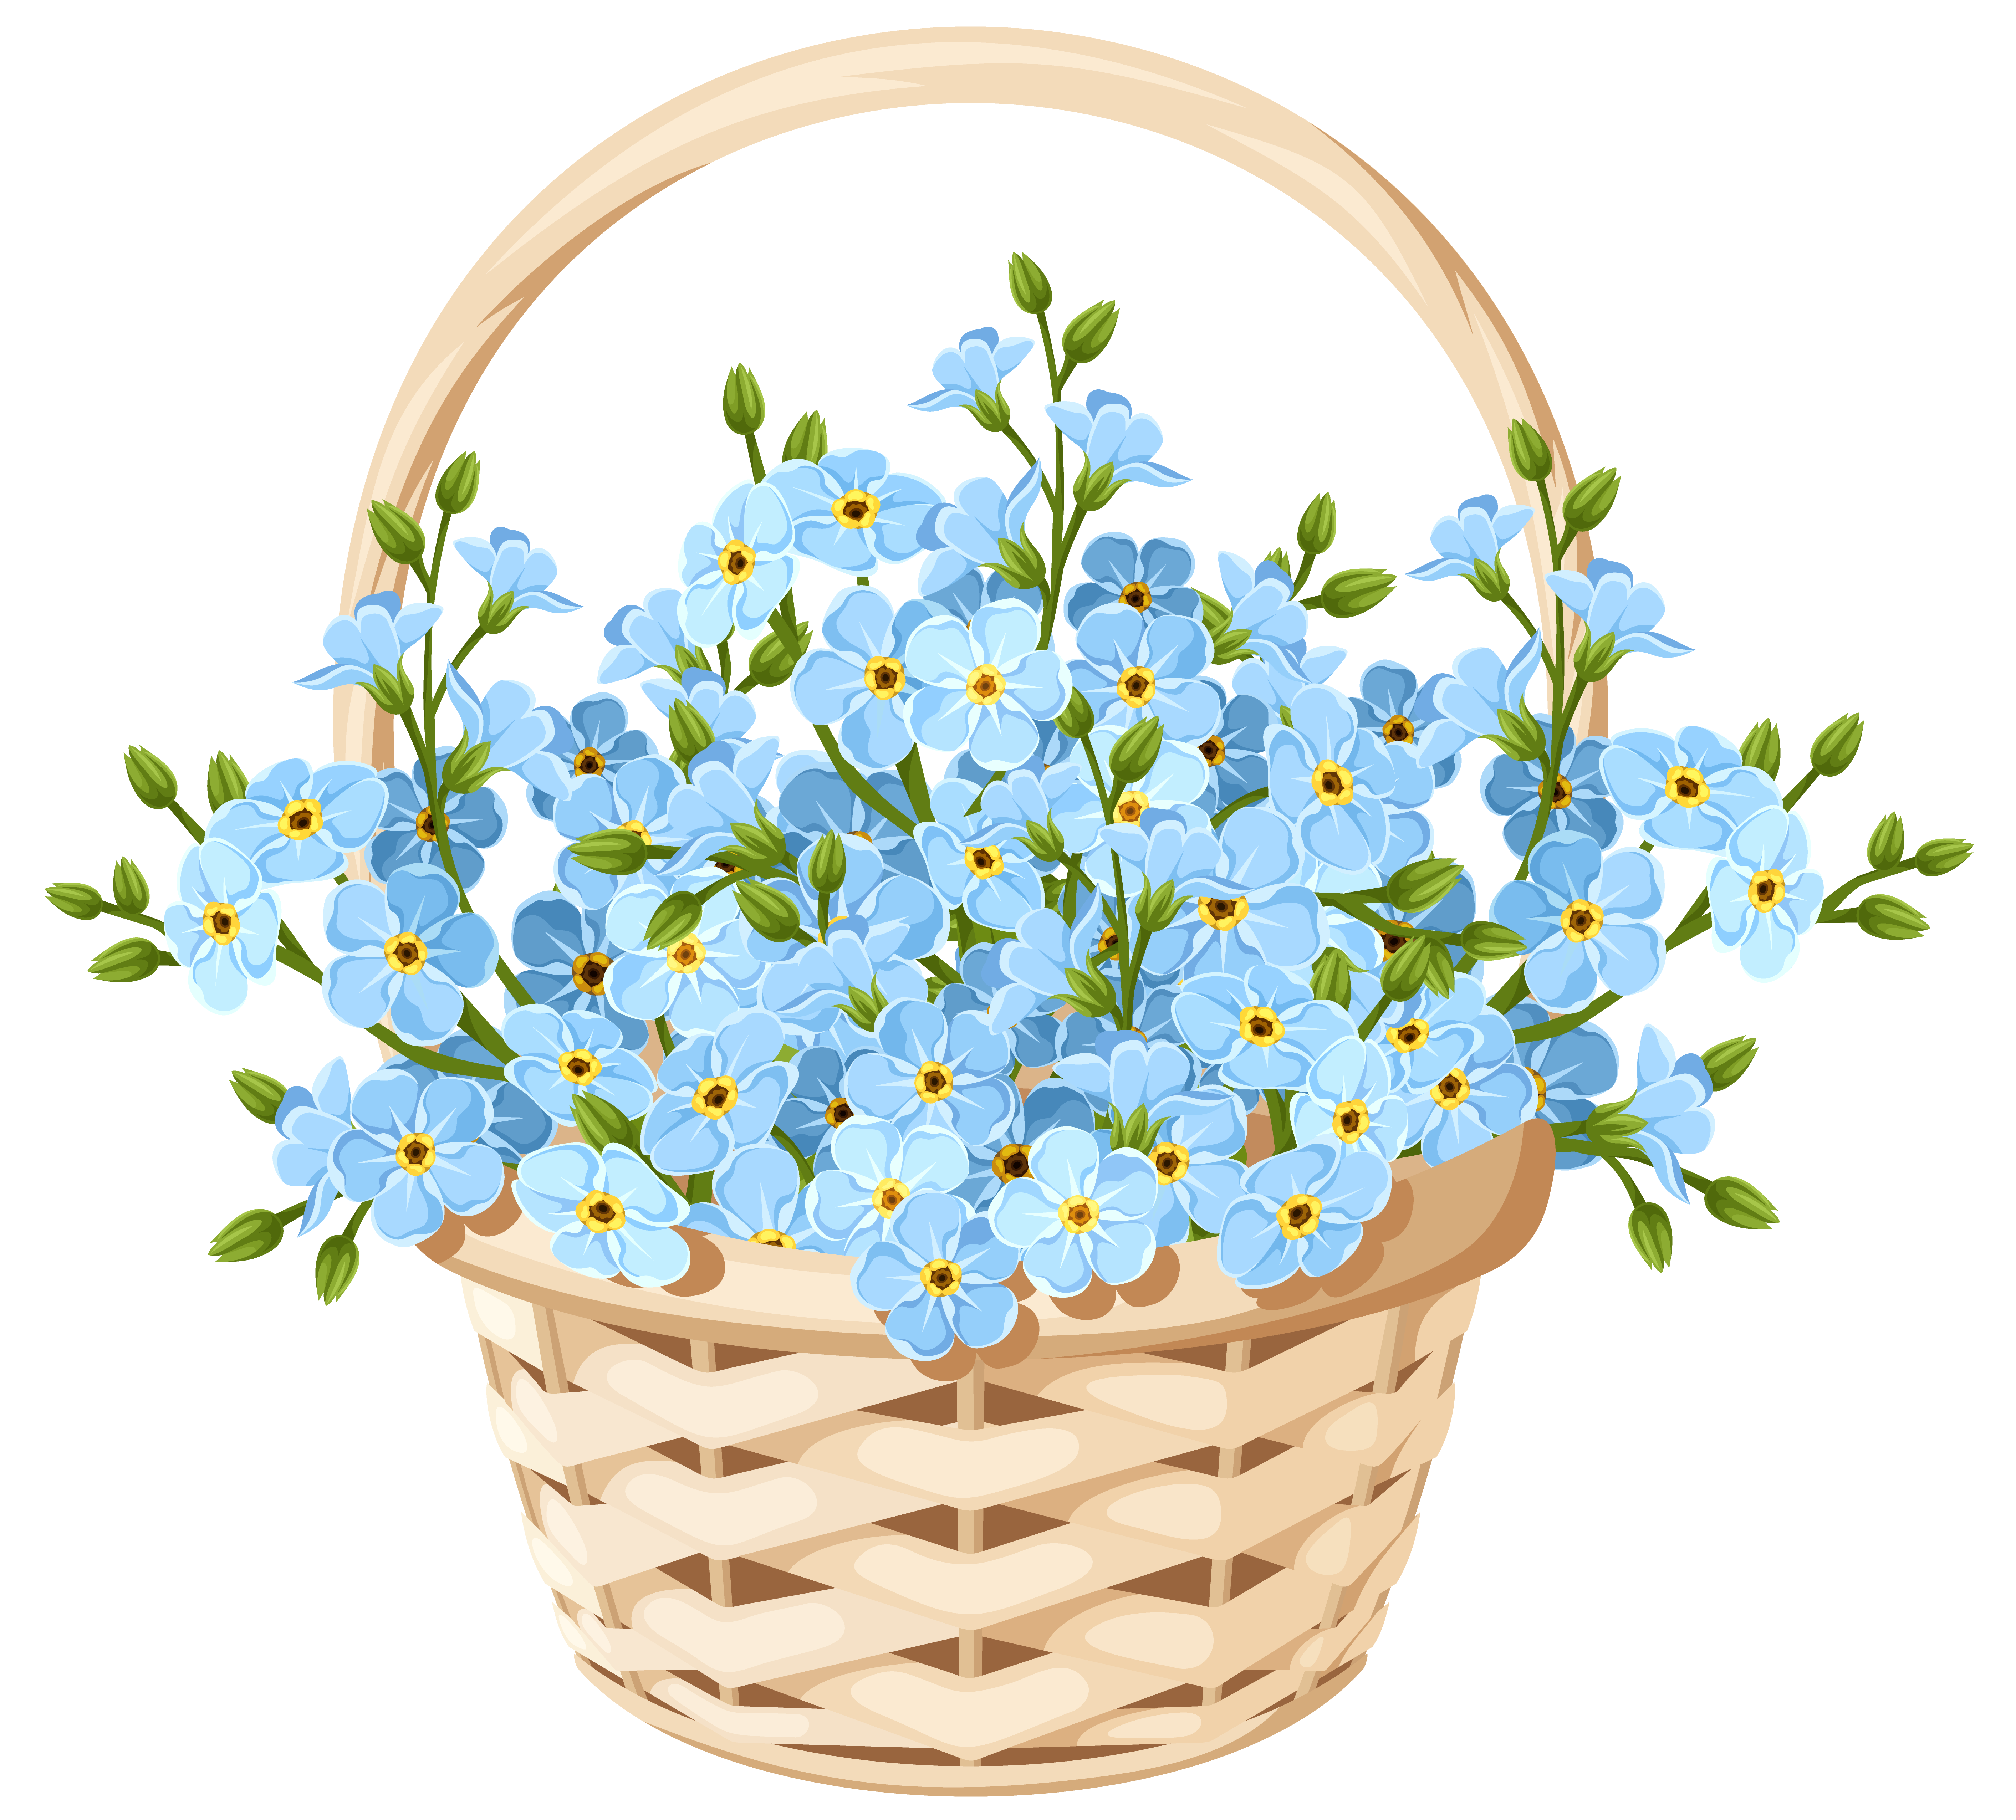 Free flower clipart with transparent background banner transparent library Flower Basket Transparent PNG Clip Art Image | Gallery Yopriceville ... banner transparent library